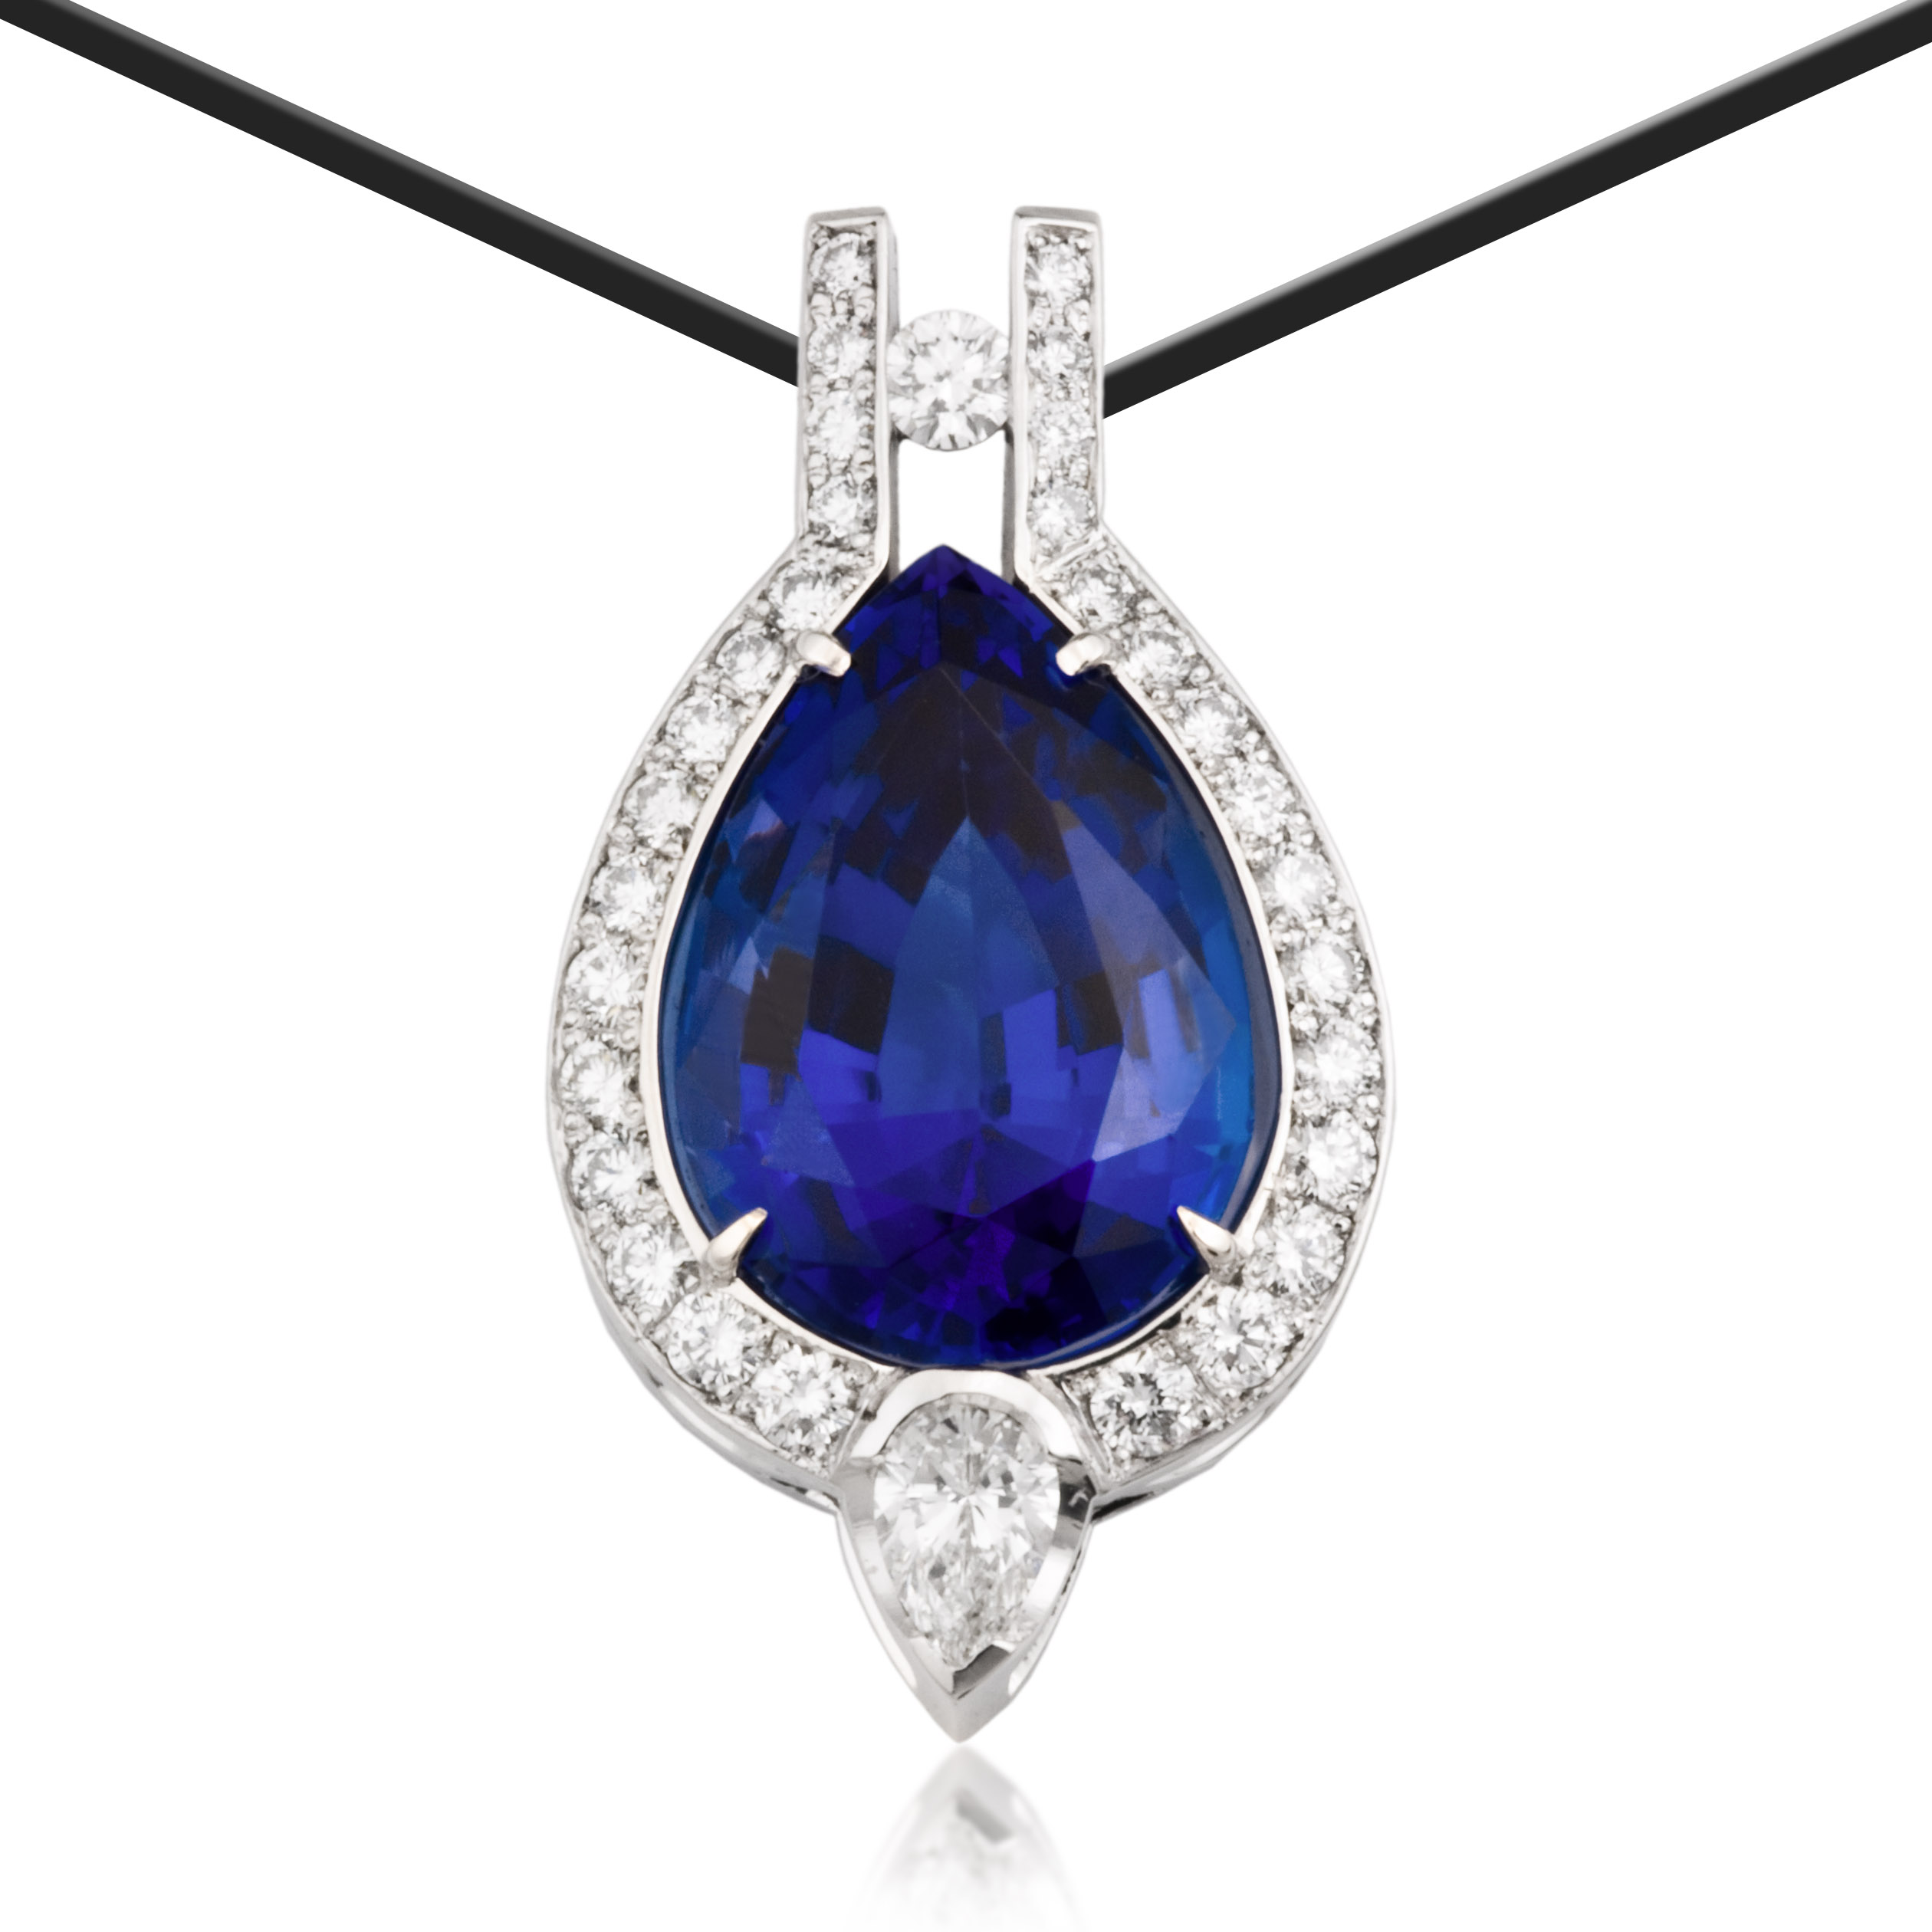 AZ Jewelry Buyers